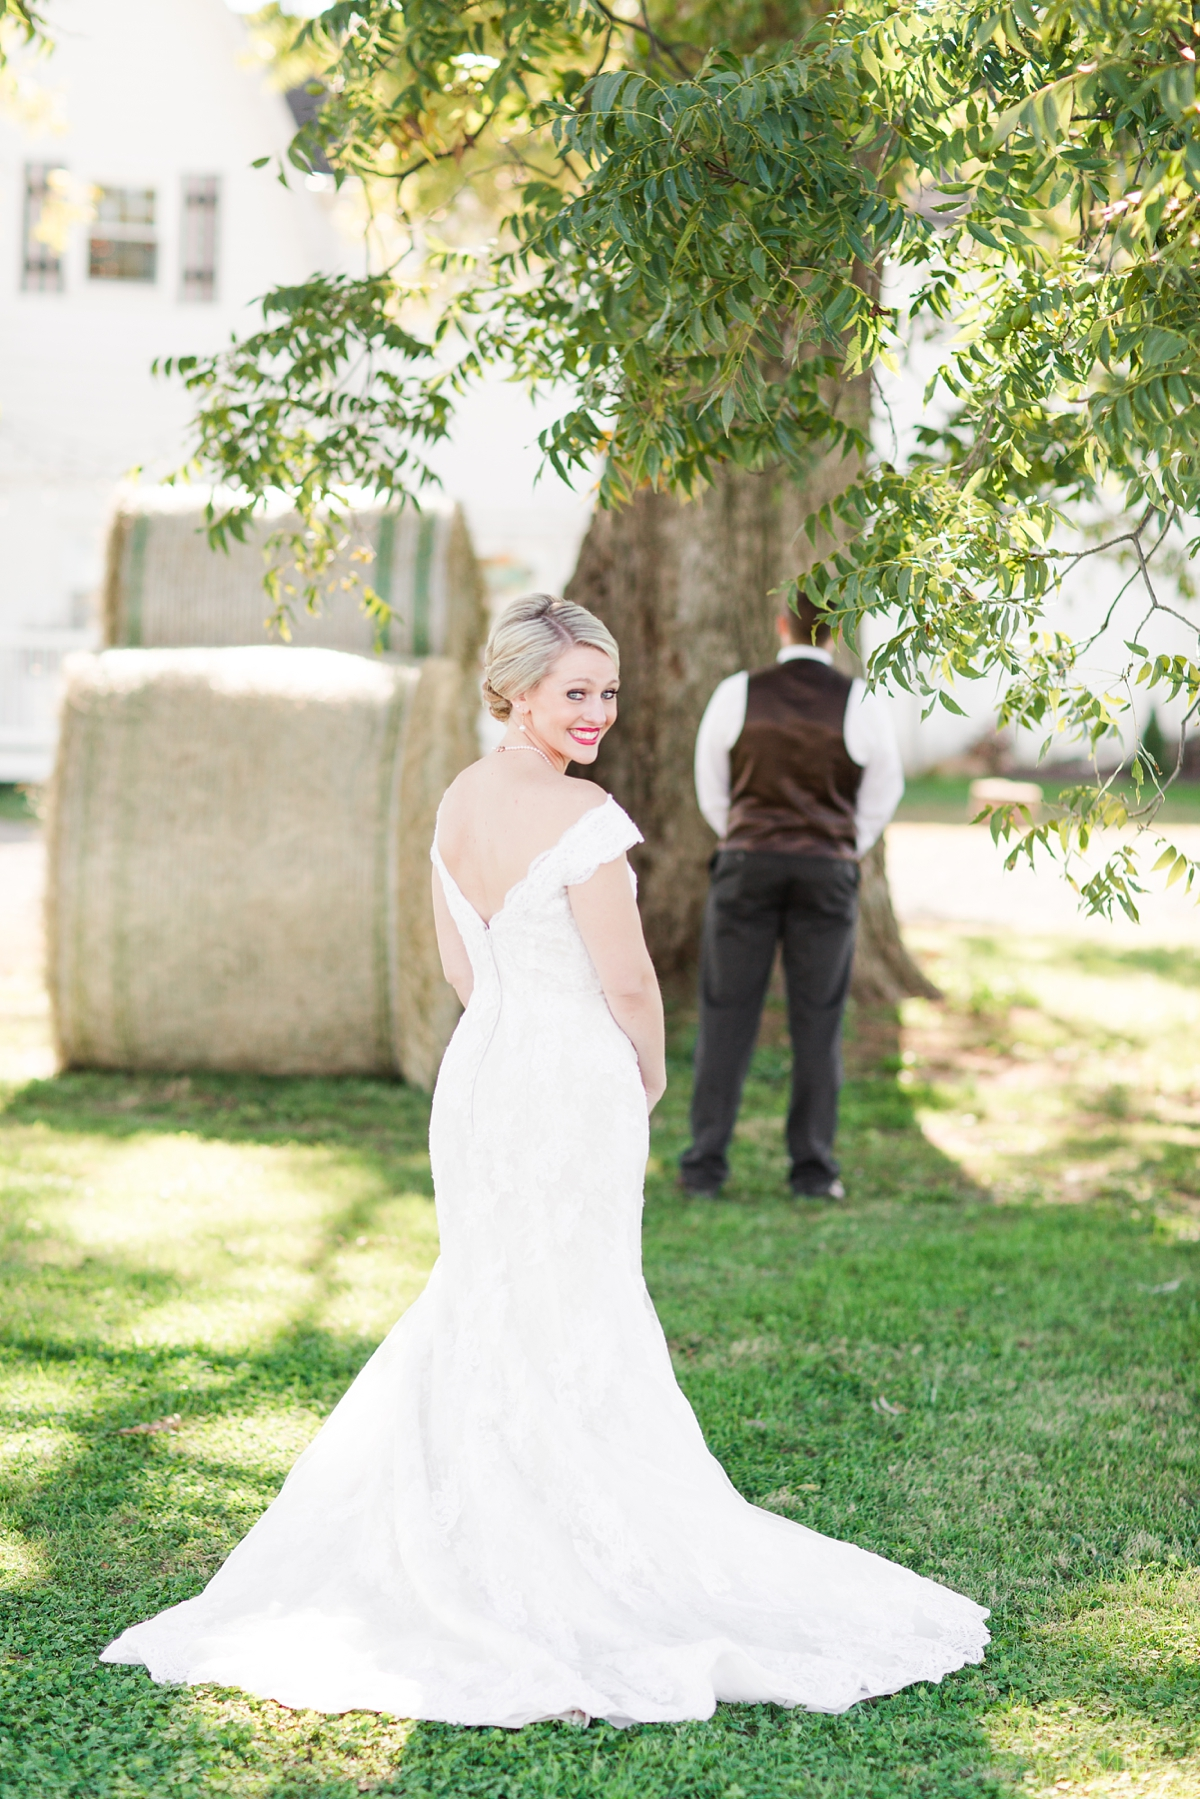 A Rustic Brandy Hill Farm First Look with Hay Bales in Culpeper, Virginia featuring accents of cranberry and gold! Photos by Katelyn James Photography